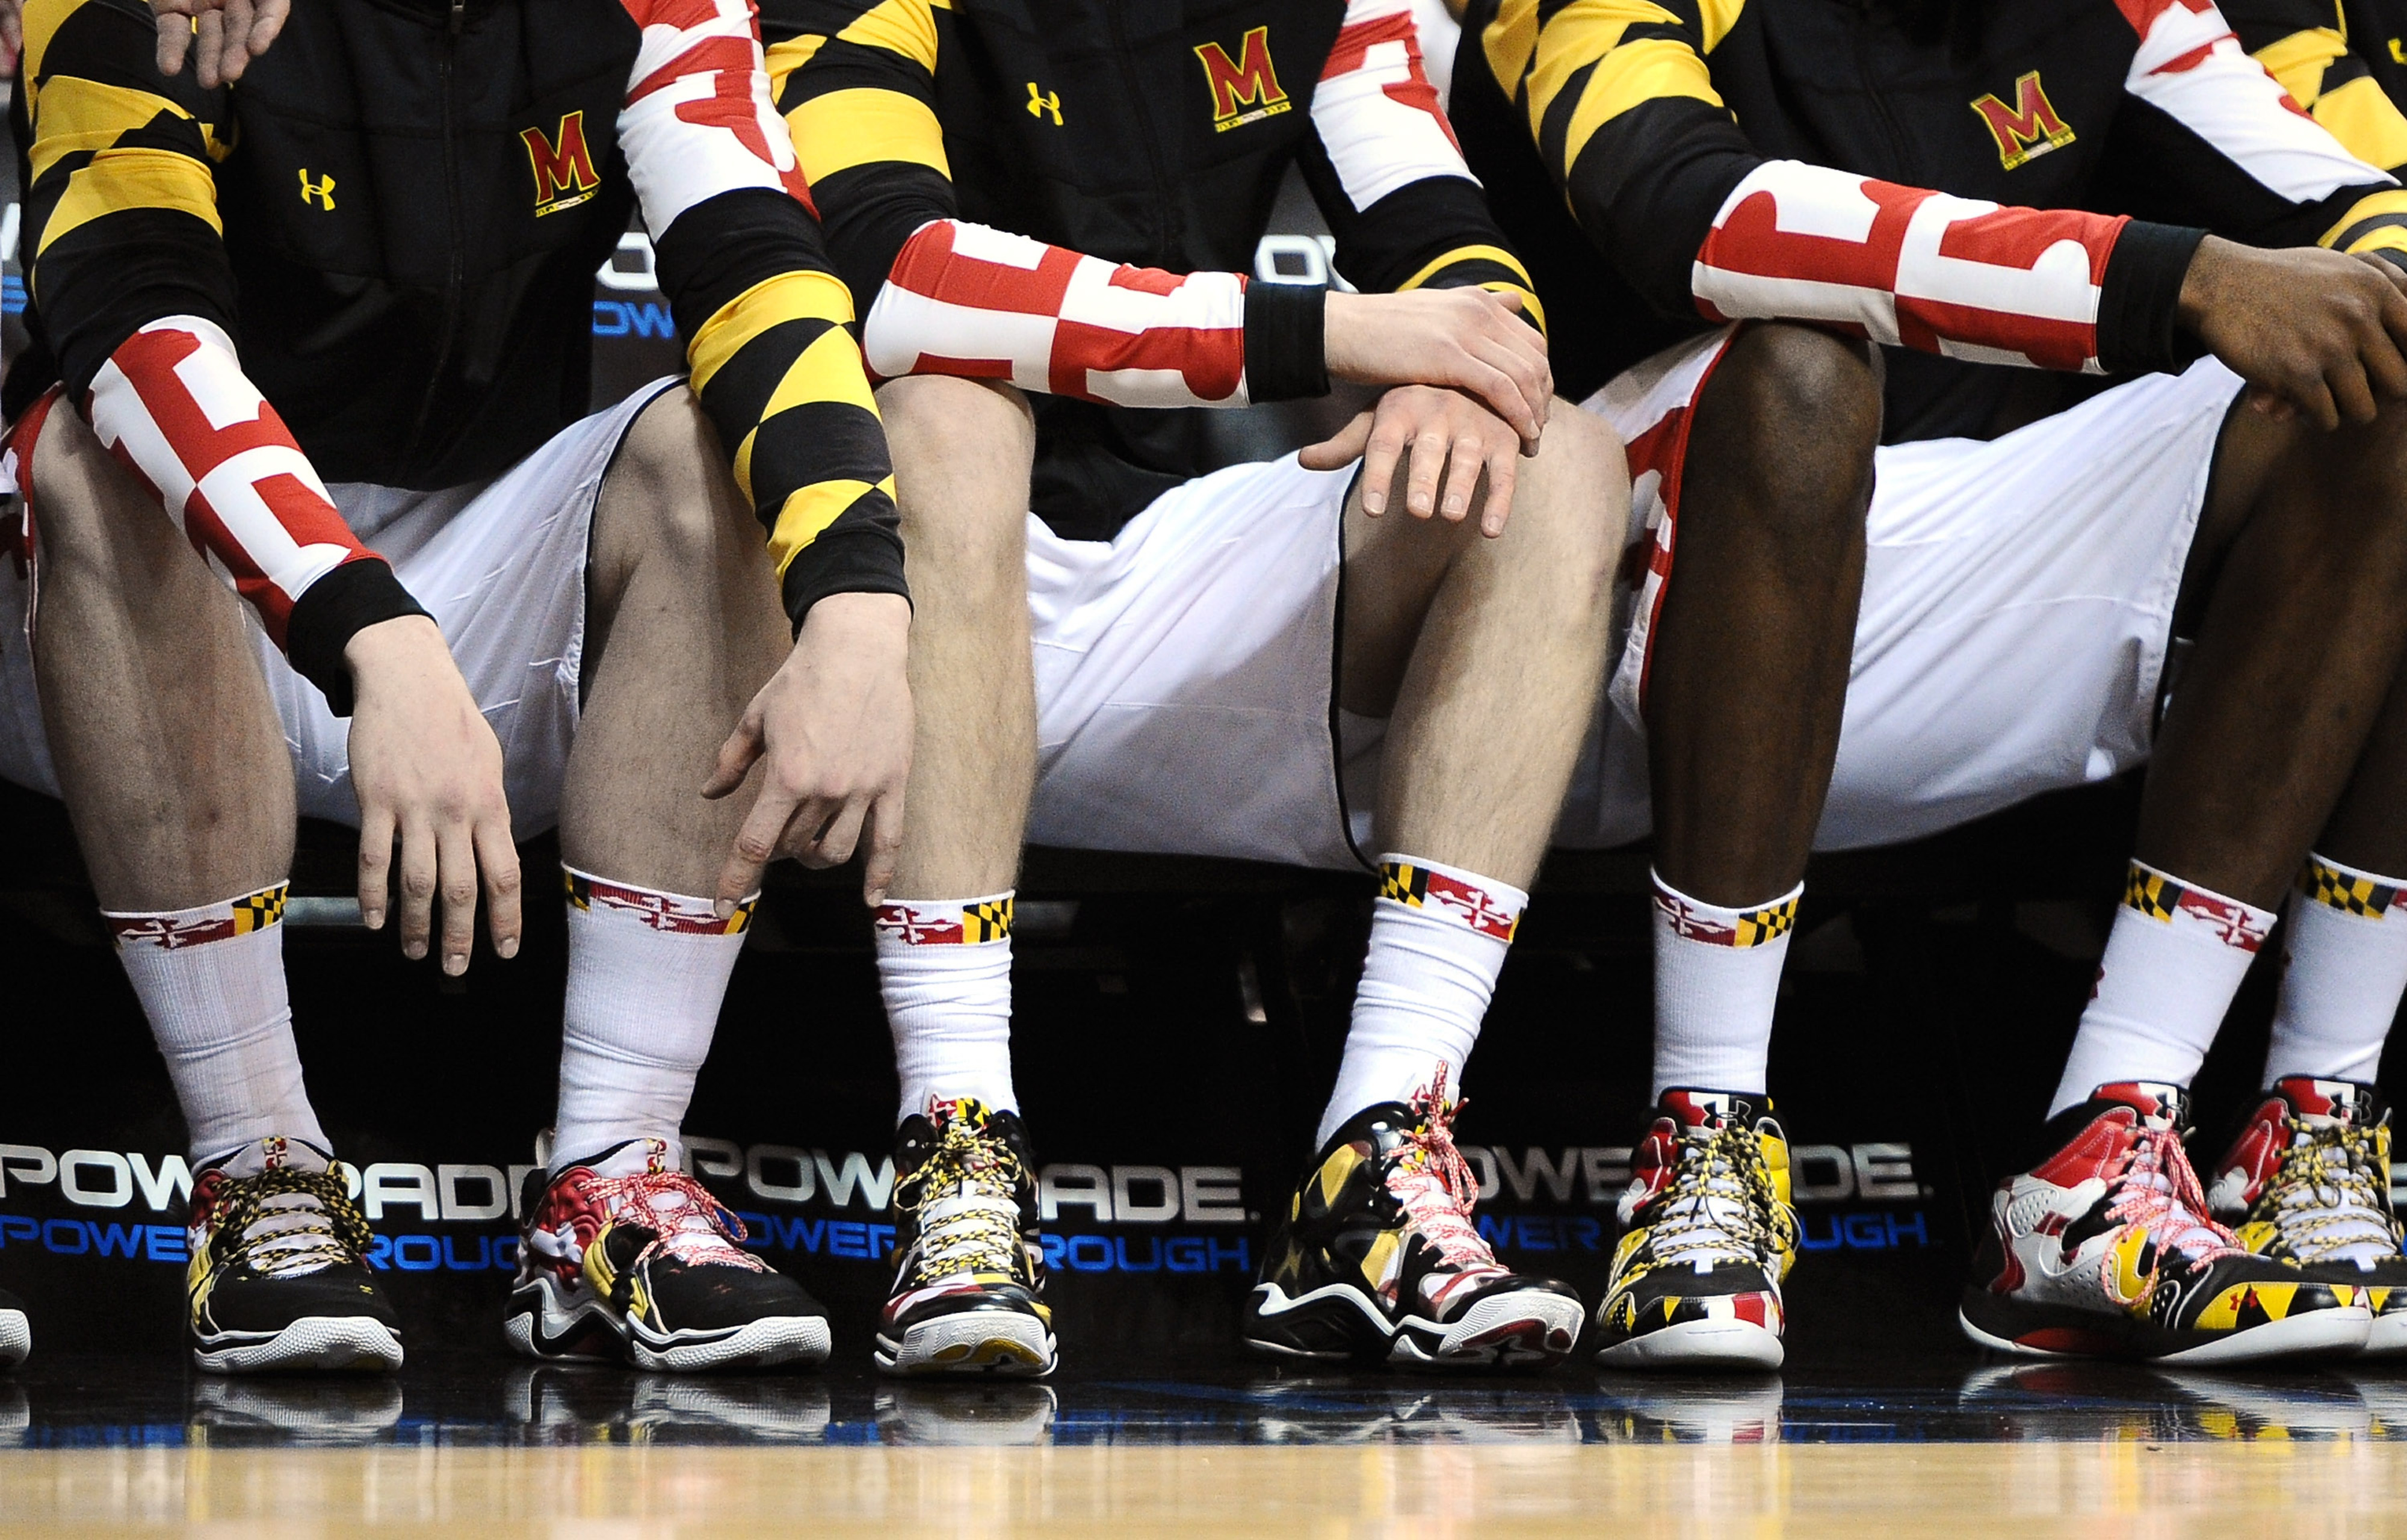 Maryland, in its final Challenge as an ACC school, is taking uniform branding to crazy levels.